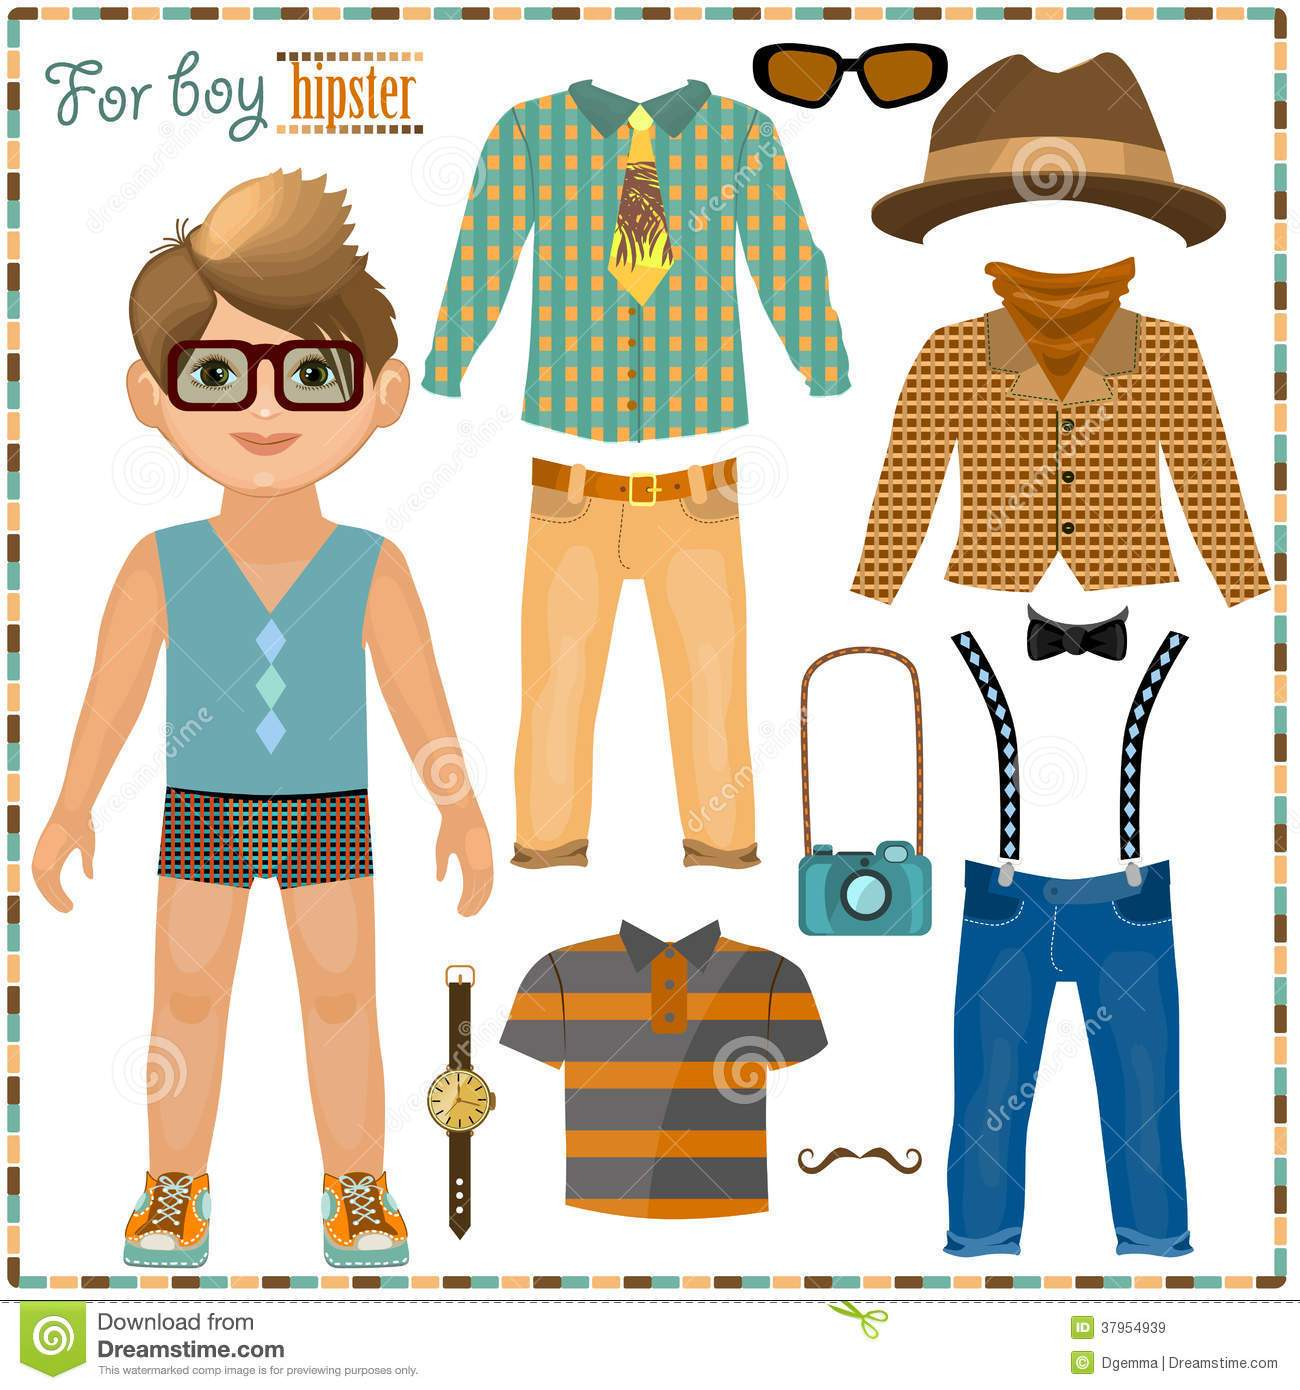 Free paper doll clipart 7 » Clipart Portal.